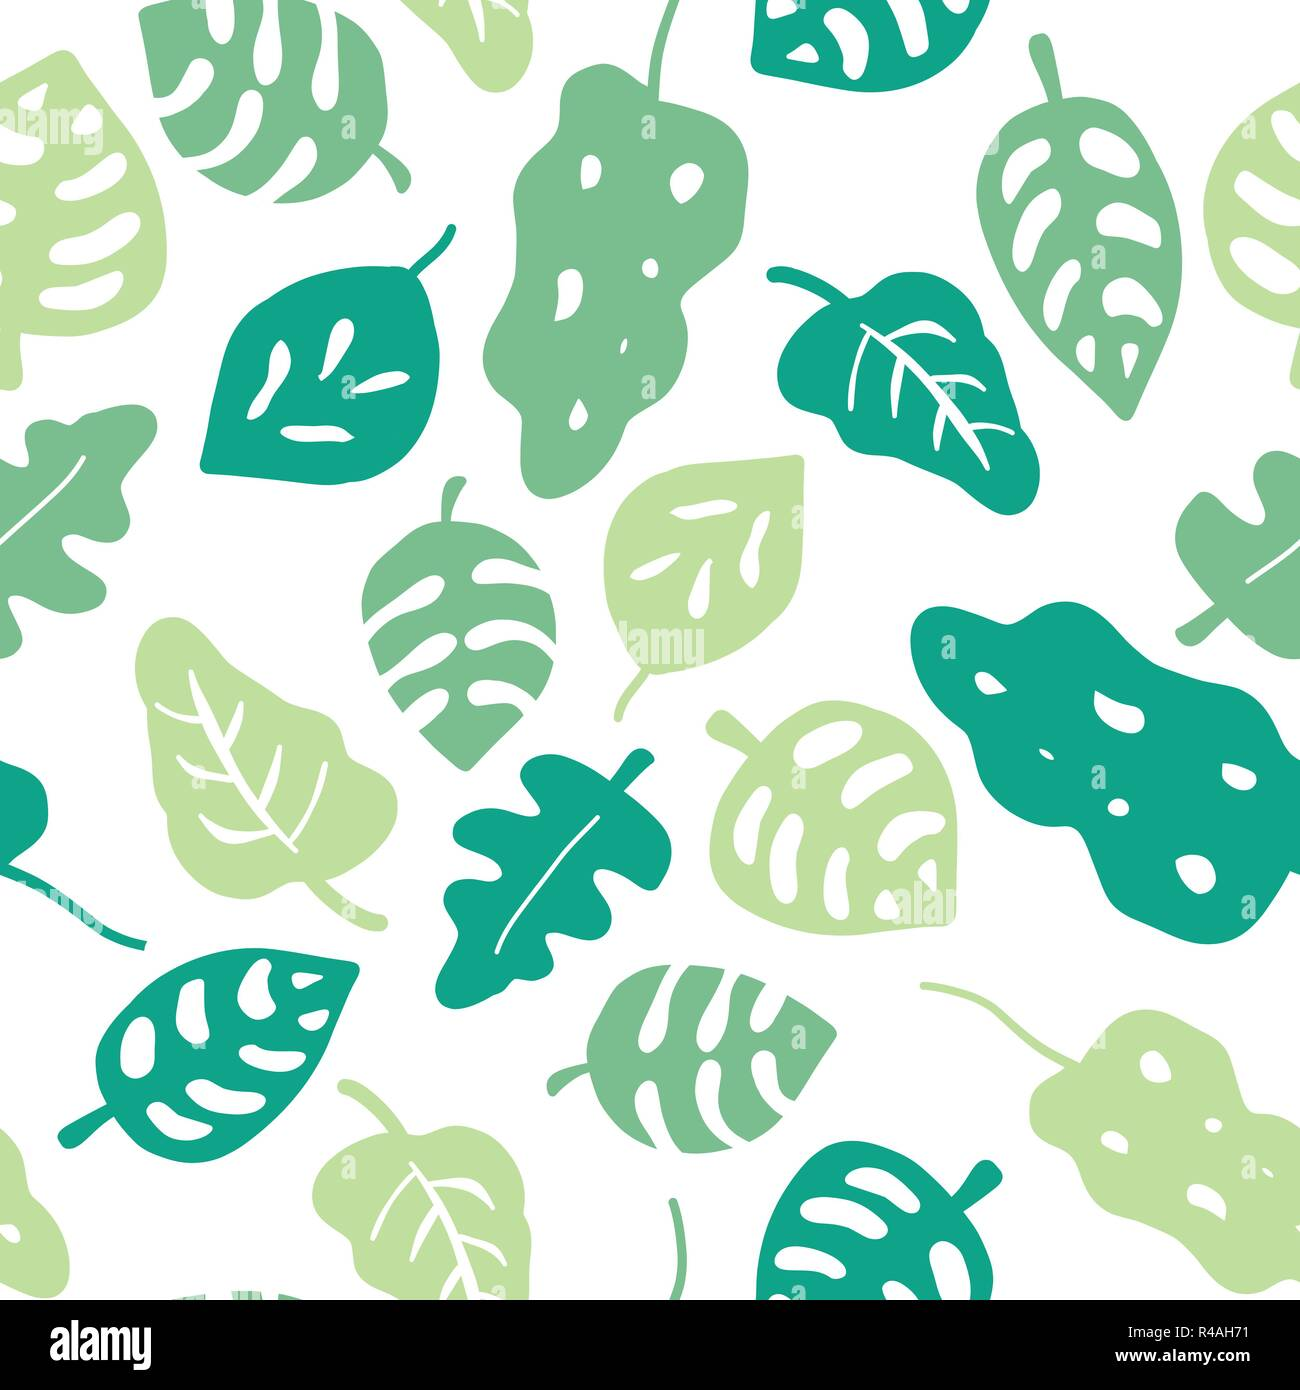 Seamless Vector Background Green Leaves Leaves In Shades Of Green On A White Background Hand Drawn Tropical Leaves Pattern Jungle Leaf Graphic Illustration For Wrapping Web Backgrounds Wallpaper Stock Vector Image